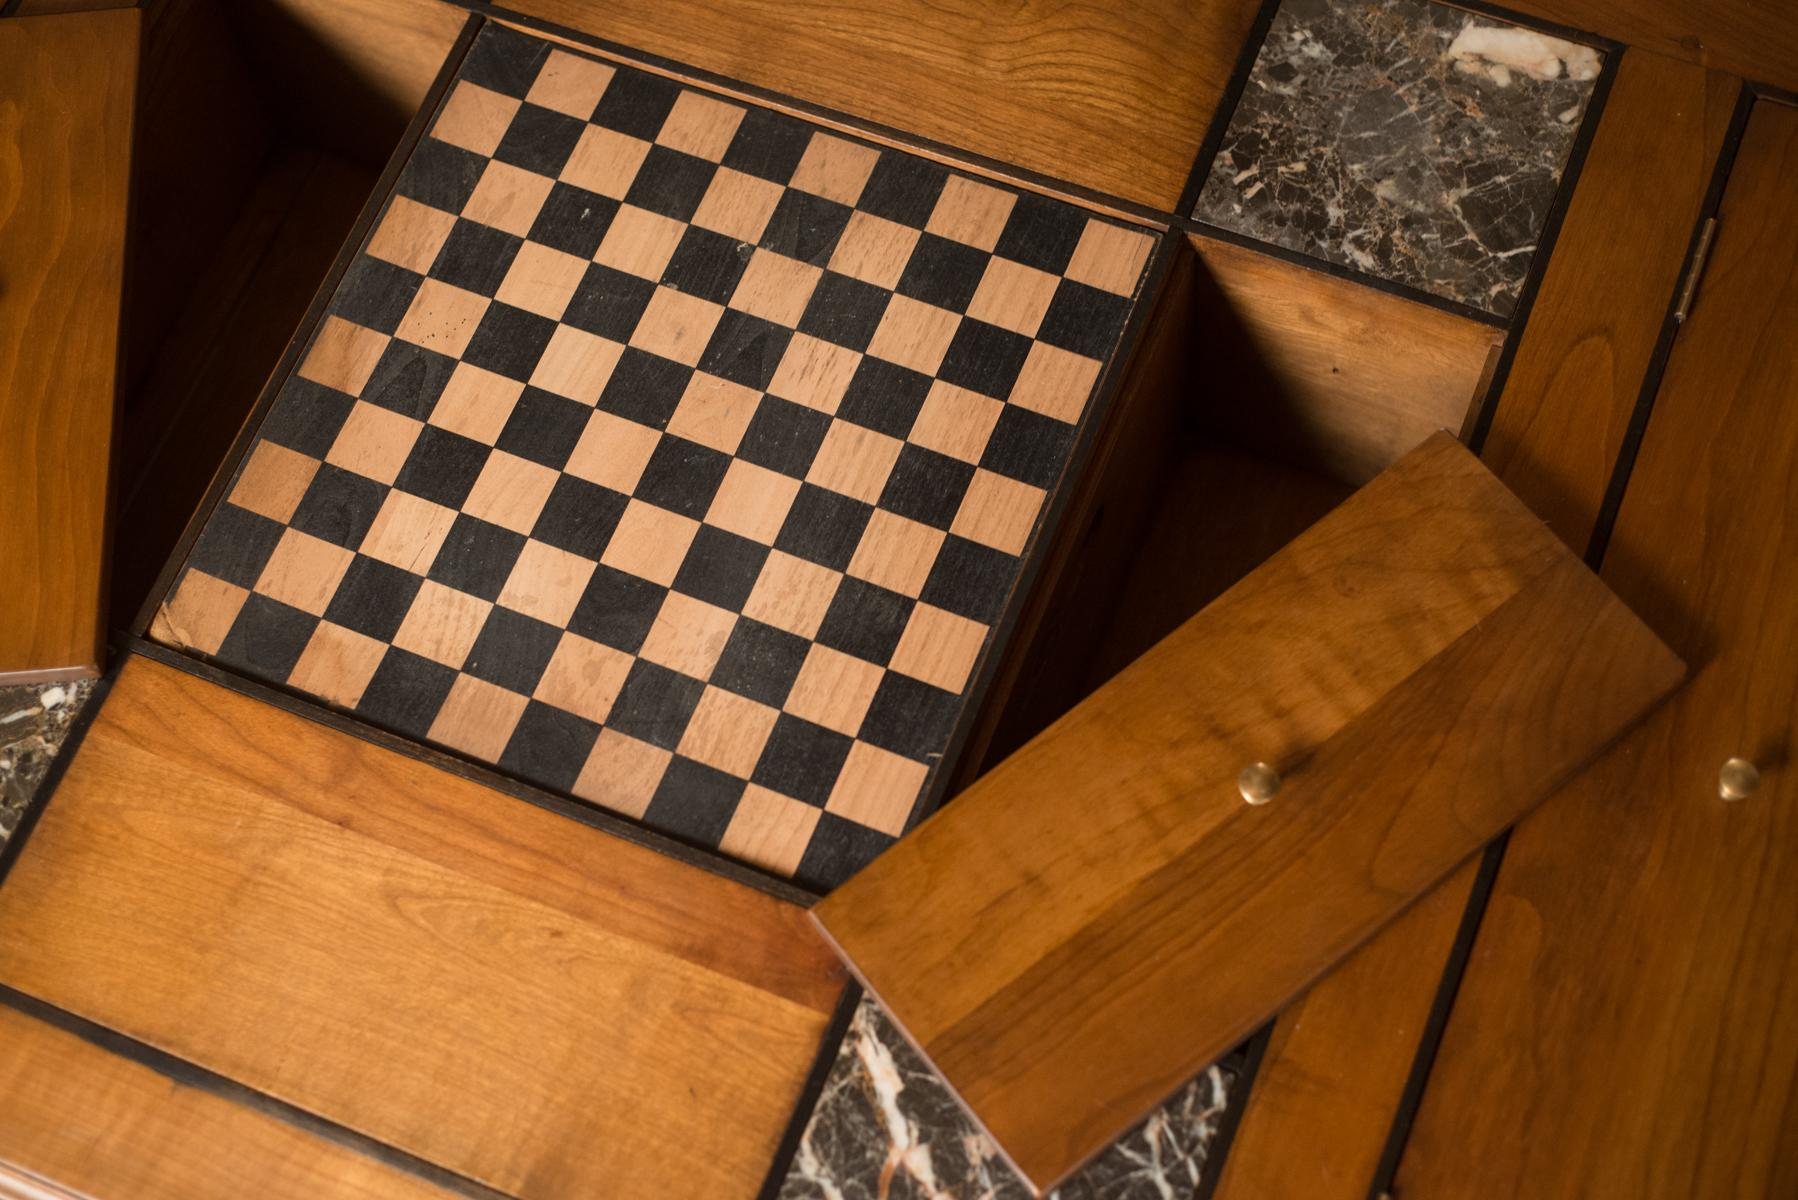 how to make a chess board table